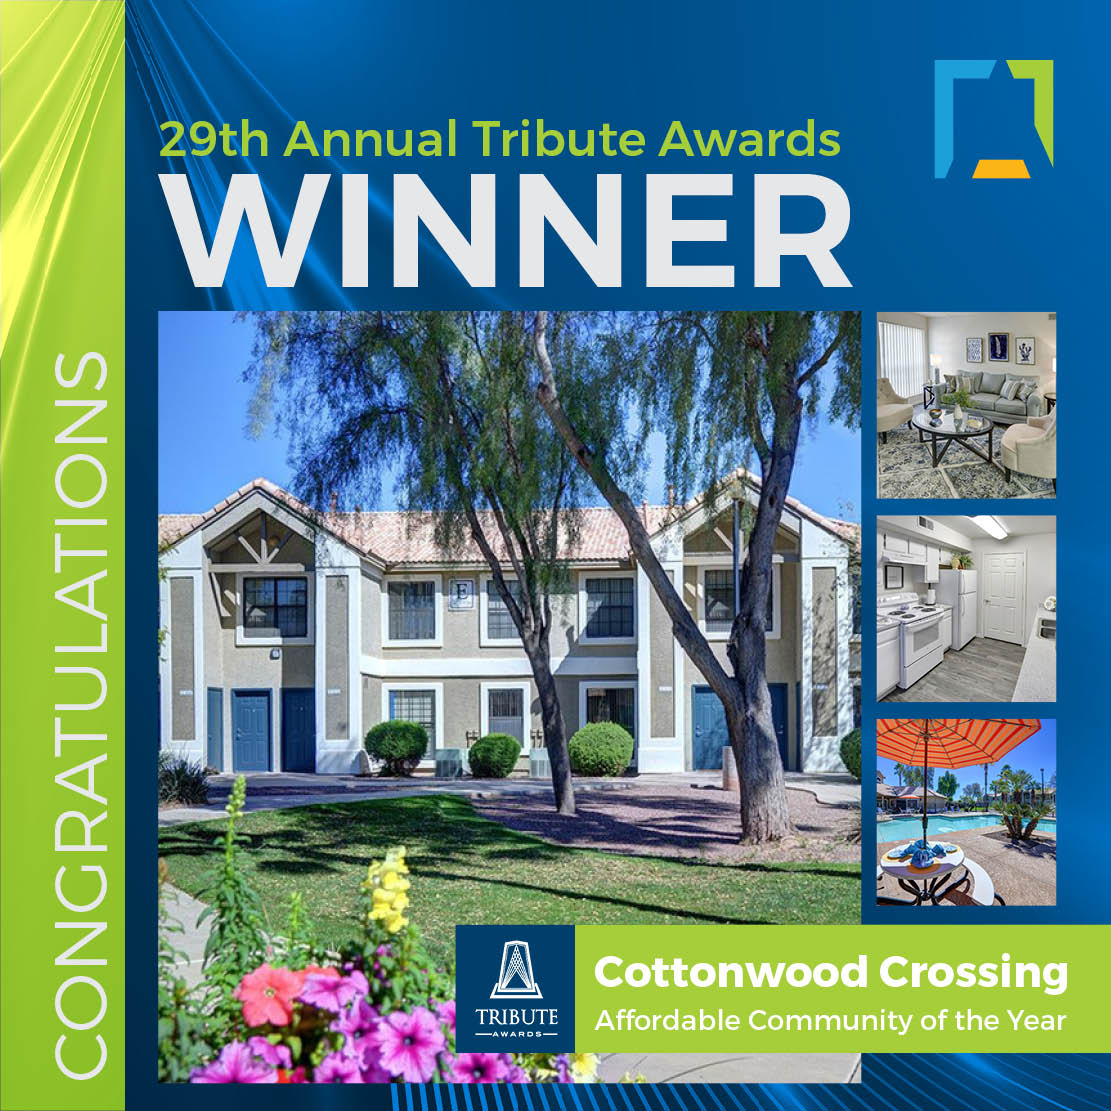 Cottonwood Crossing voted best affordable community of the year